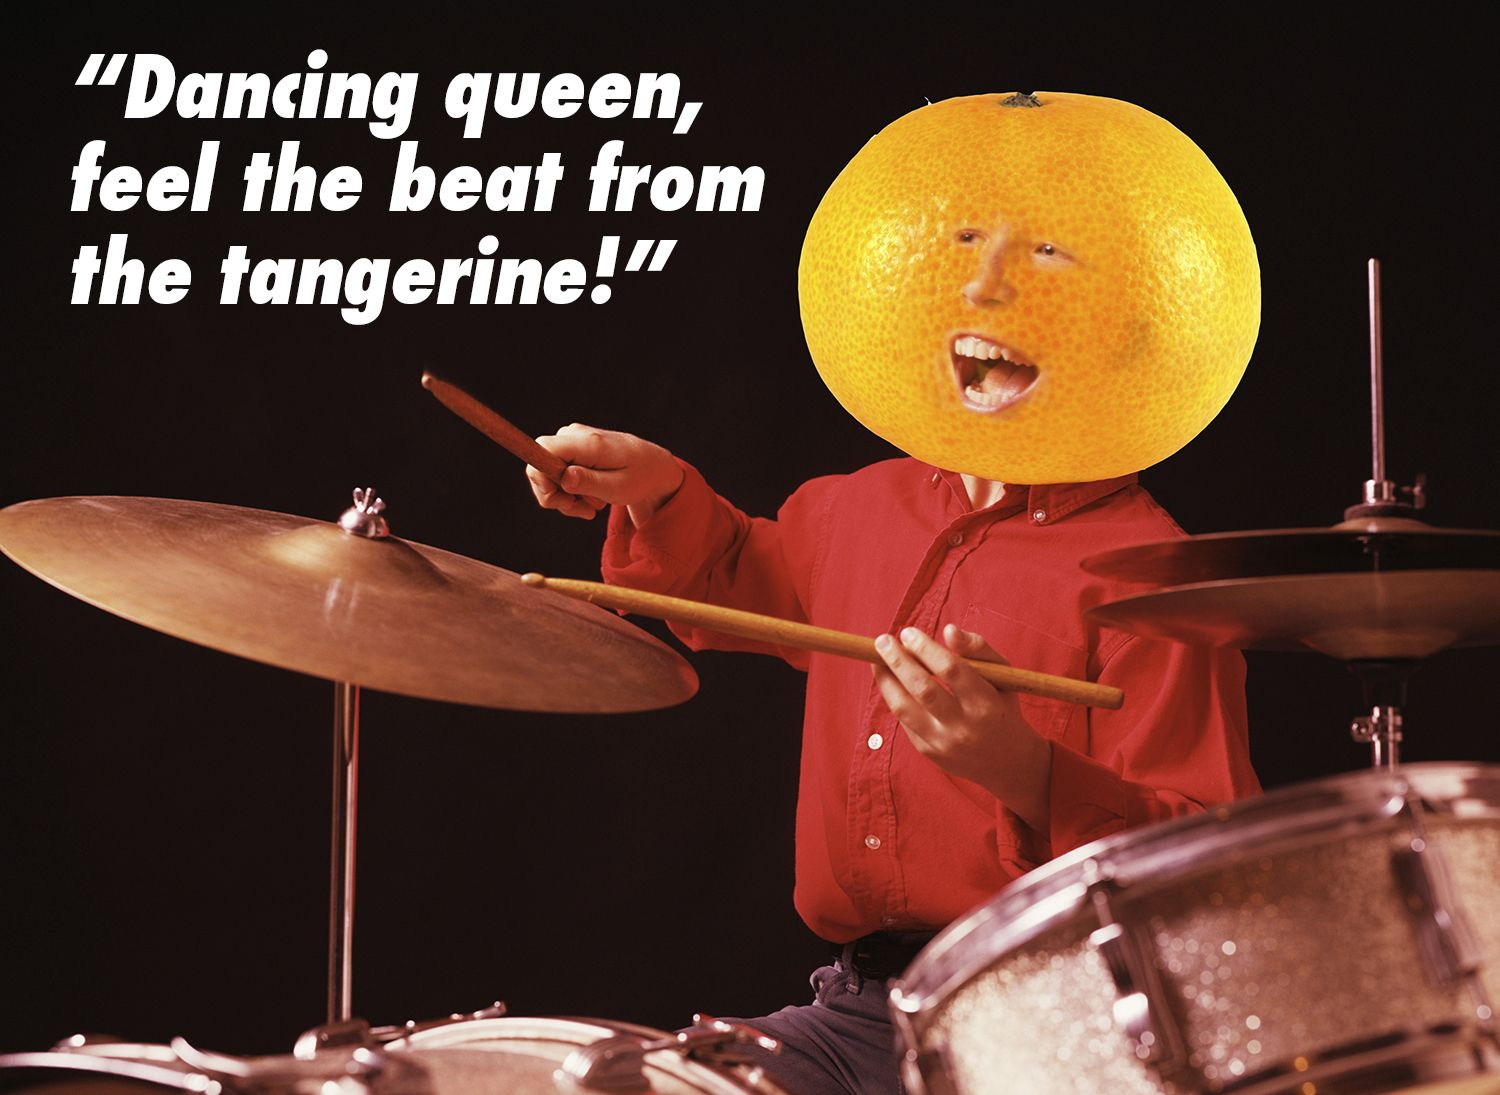 These Commonly Misheard Lyrics Are Way Funnier Than The Real Ones